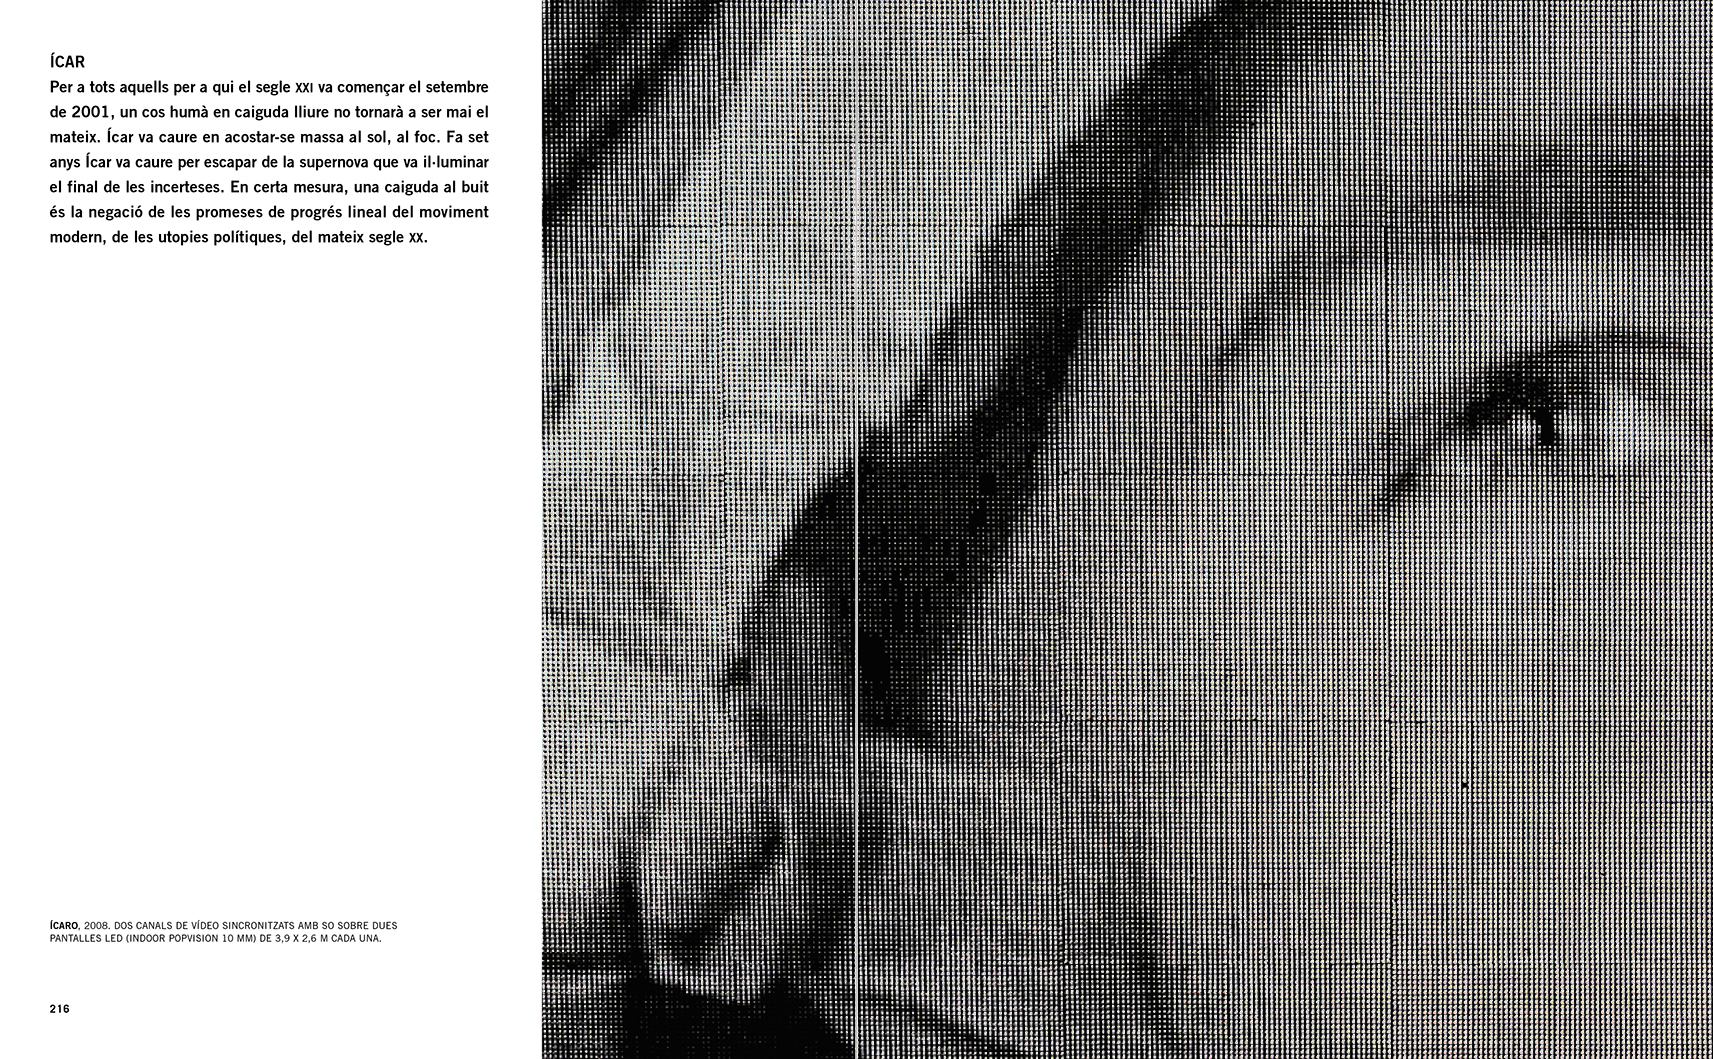 Selection from the catalogue 'Francesc Torres. Da capo', pages 216 and 217